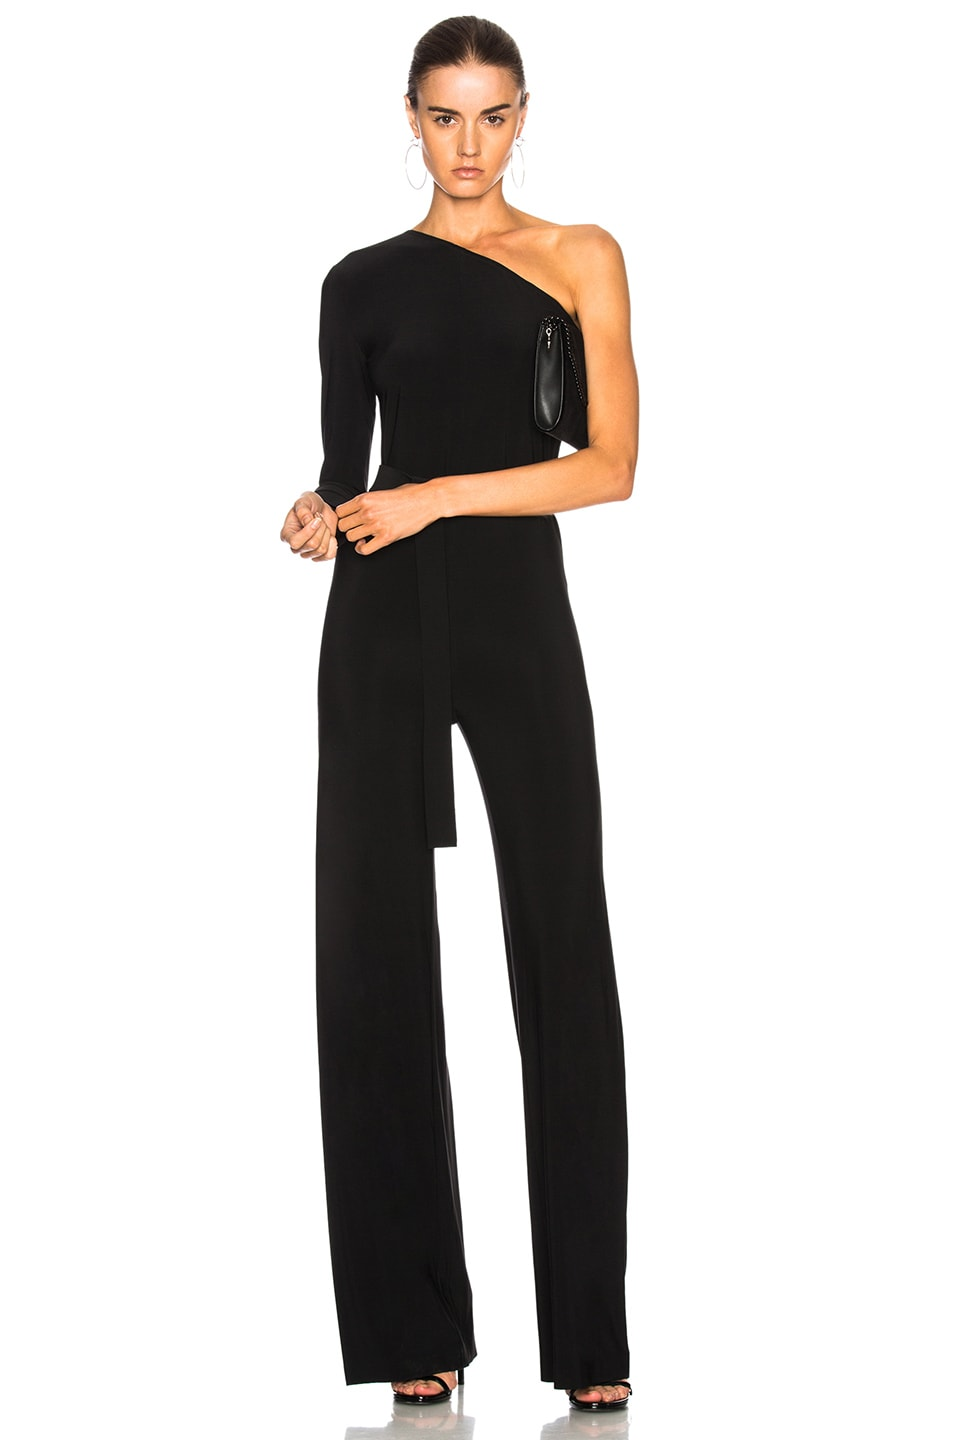 58959c6a9da0 Image 1 of Norma Kamali One Shoulder Belted Jumpsuit in Black